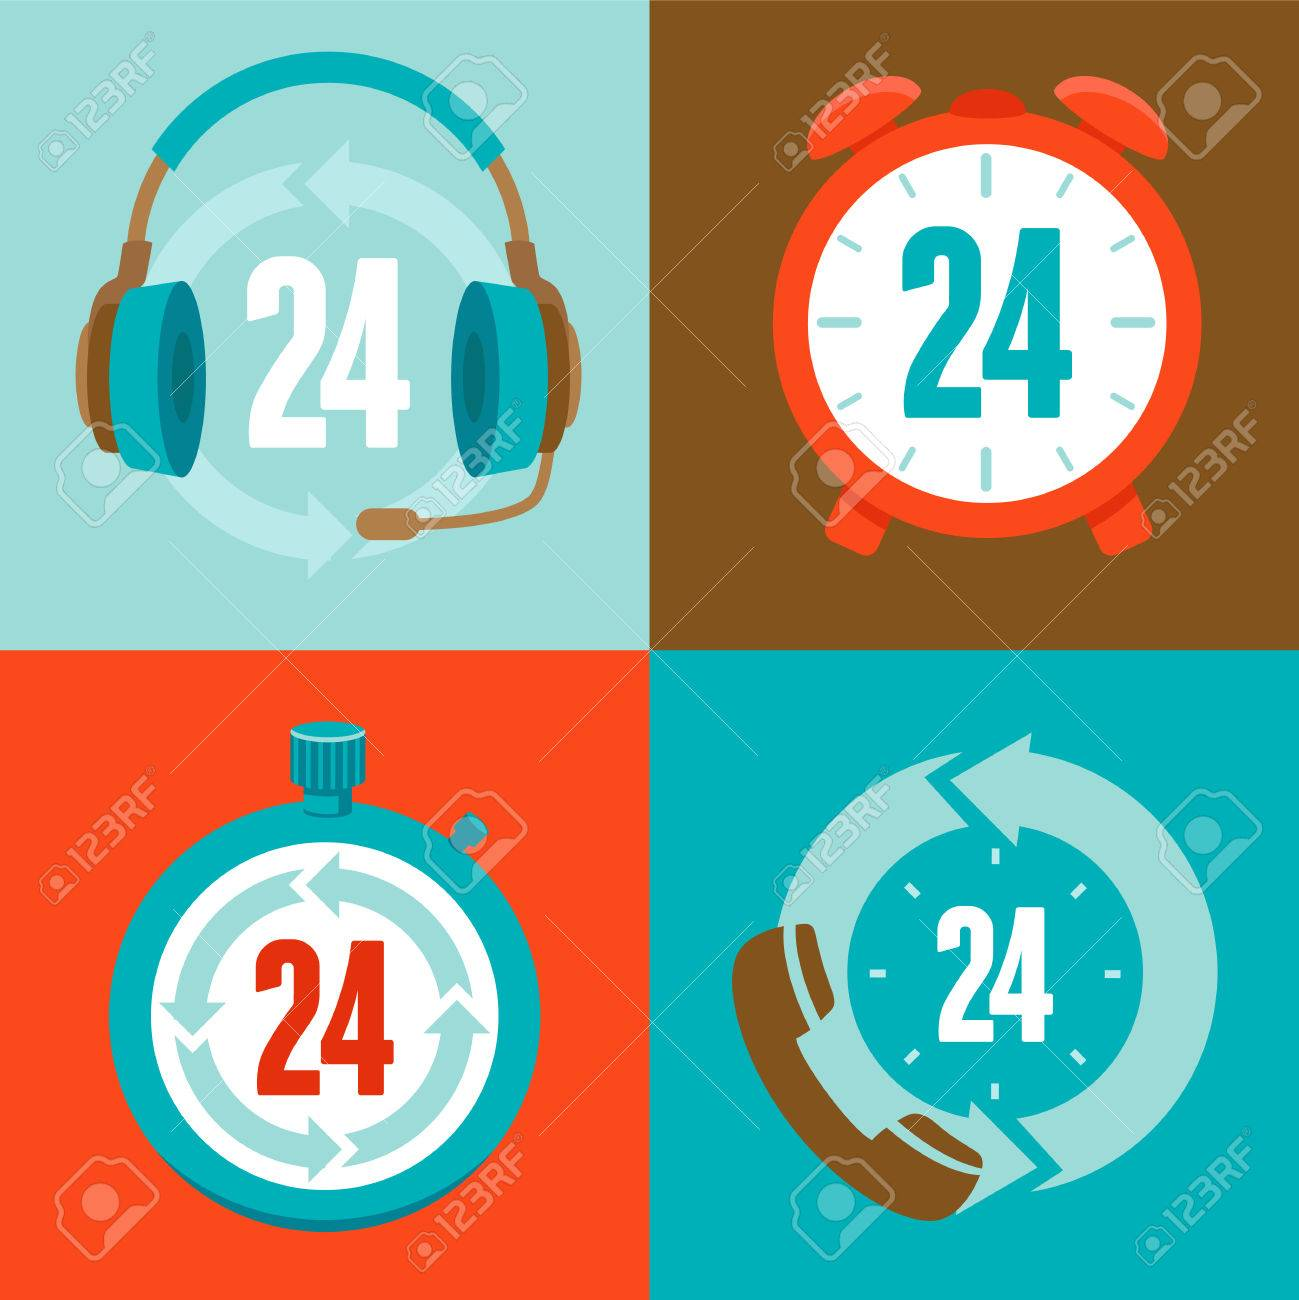 Twenty four hour support - flat vector icons and signs Stock Vector - 26056099